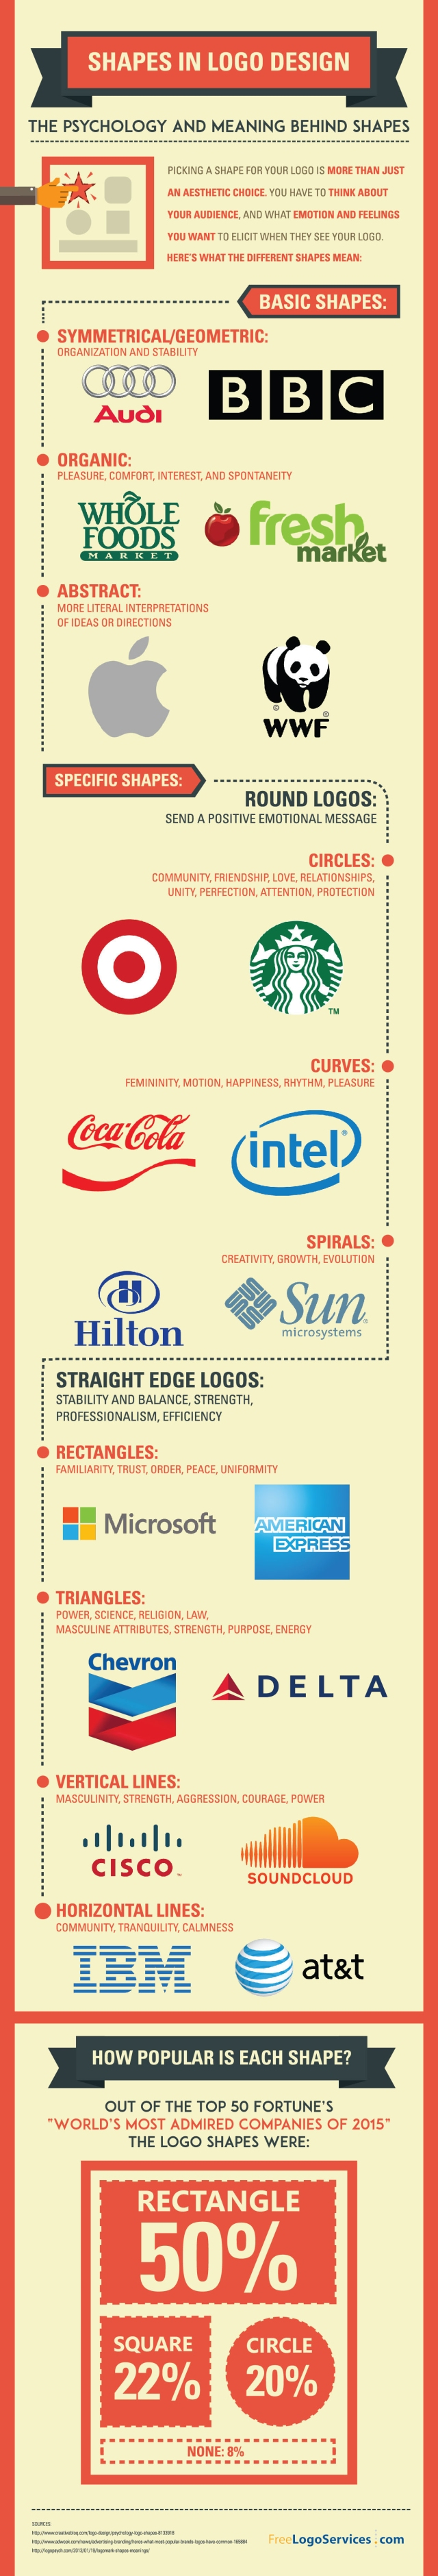 The Psychology & Meaning of Shapes in Logo Design